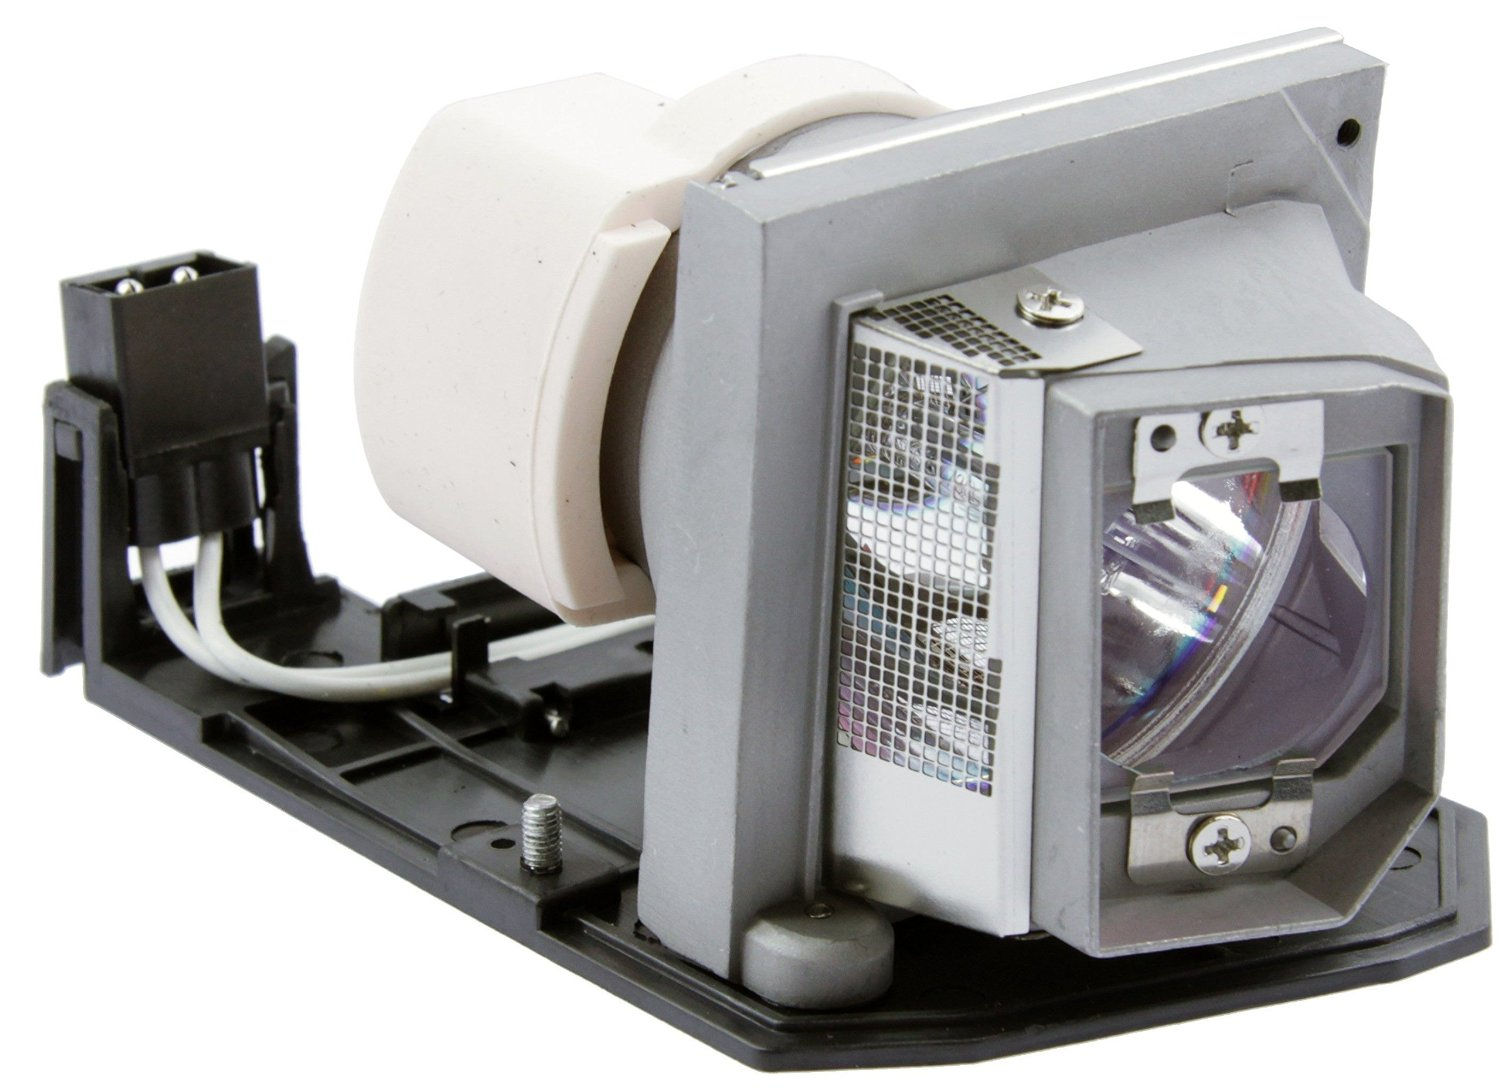 BL-FP230D SP.8EG01GC01 for OPTOMA HD20 HD200X TX612 TX615 EX612 EX615 HD2200 HD180 EH1020 Projector Bulb Lamp With housing sekond original osram bulb bl fp230d sp 8eg01gc01 projector lamp with housing for optoma hd20 hd200x eh1020 tx612 hd180 ex612